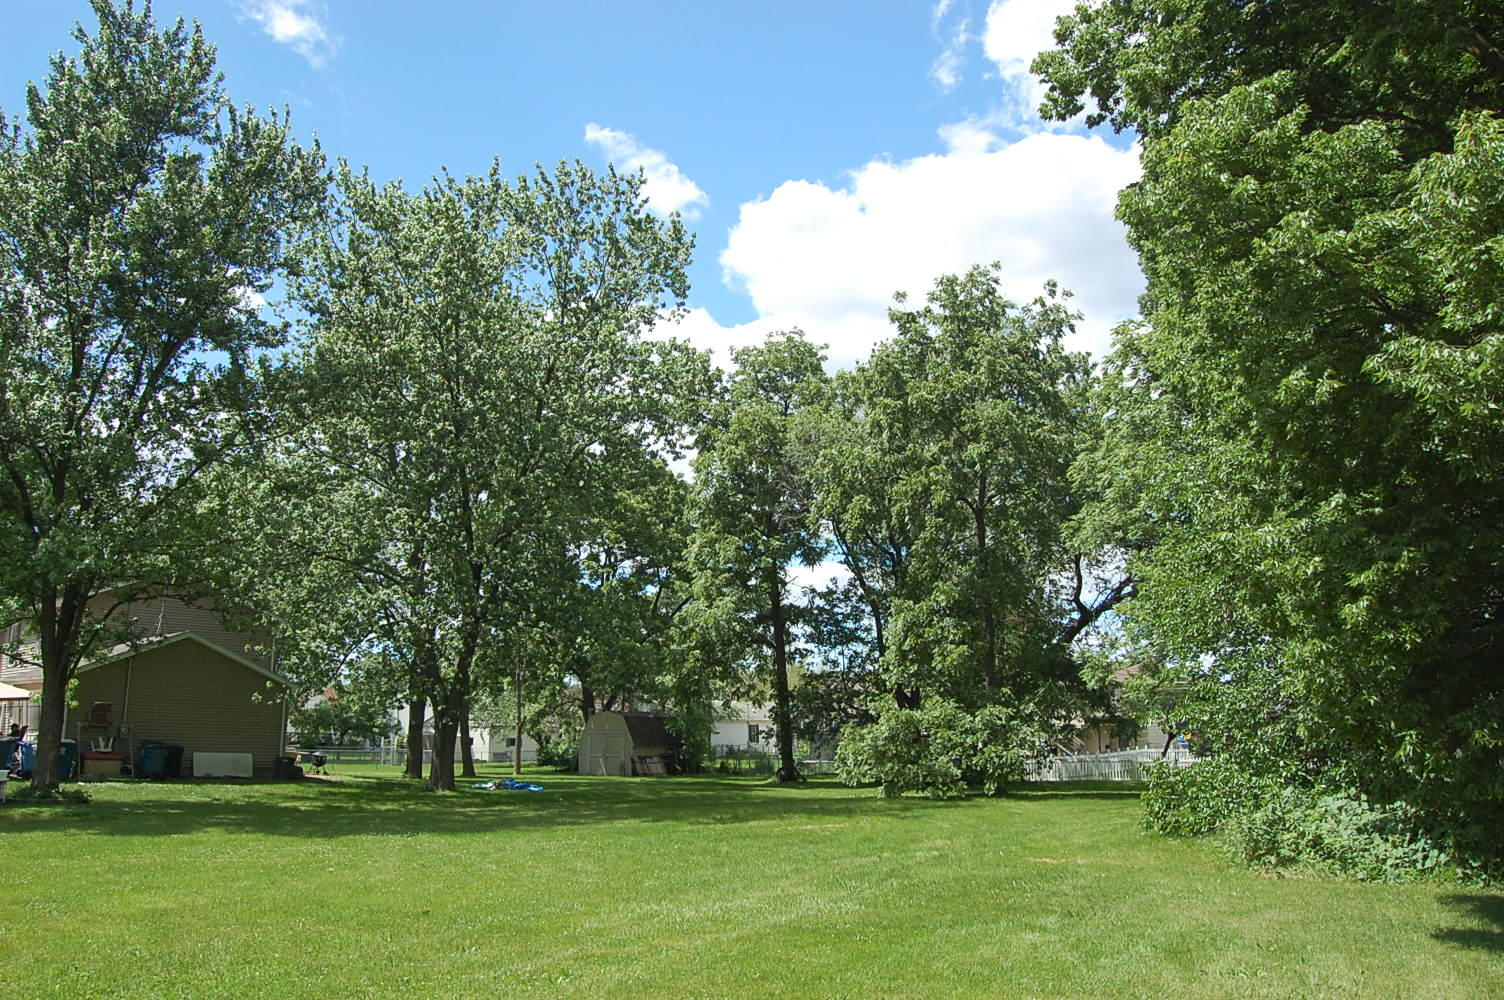 Usable Land in Friendly Illinois Town - Image 0